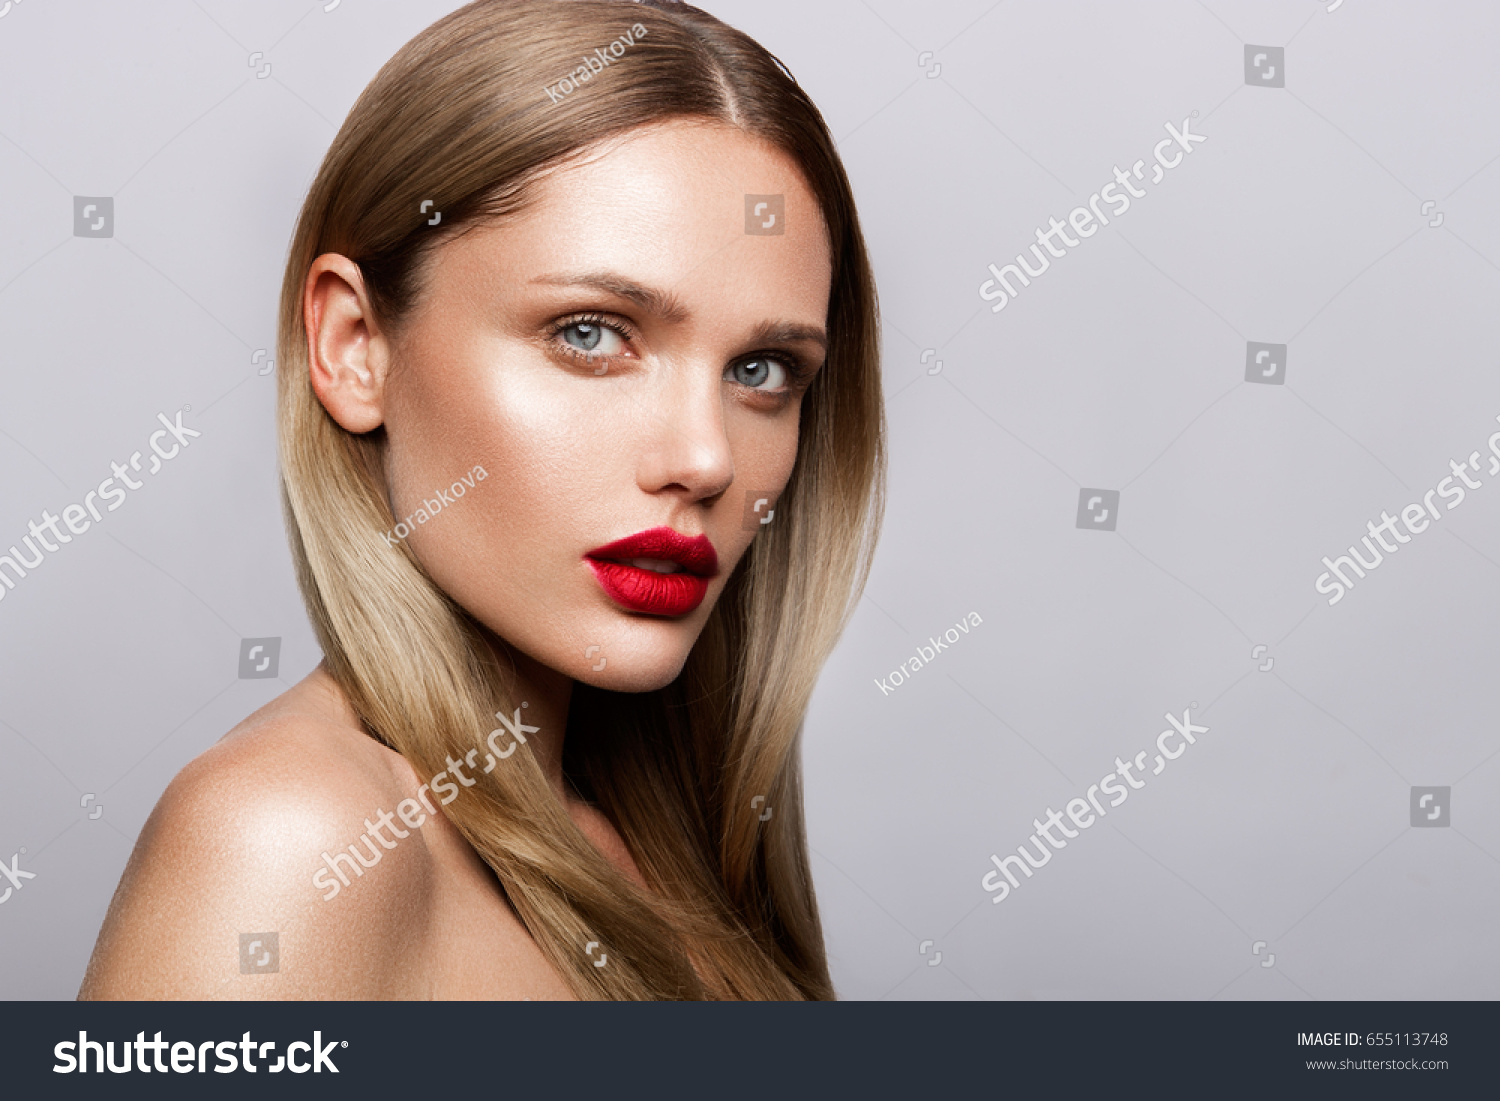 pimpandhost imageban Beautiful young model with red lips and nude manicure